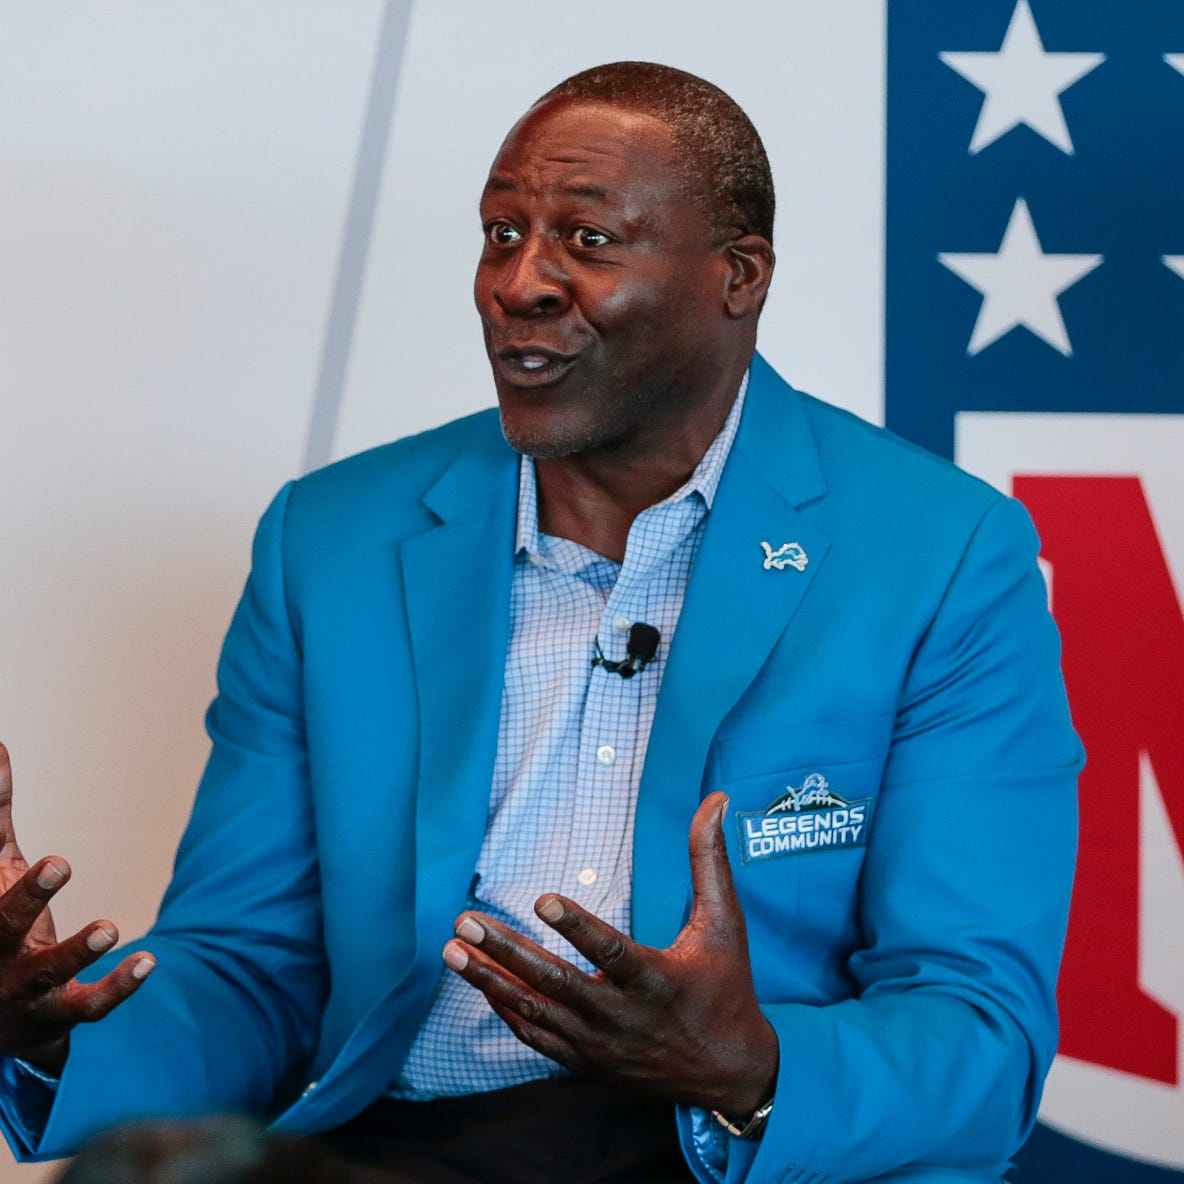 Lomas Brown: 'I got my work cut out for me' as new Lions radio voice